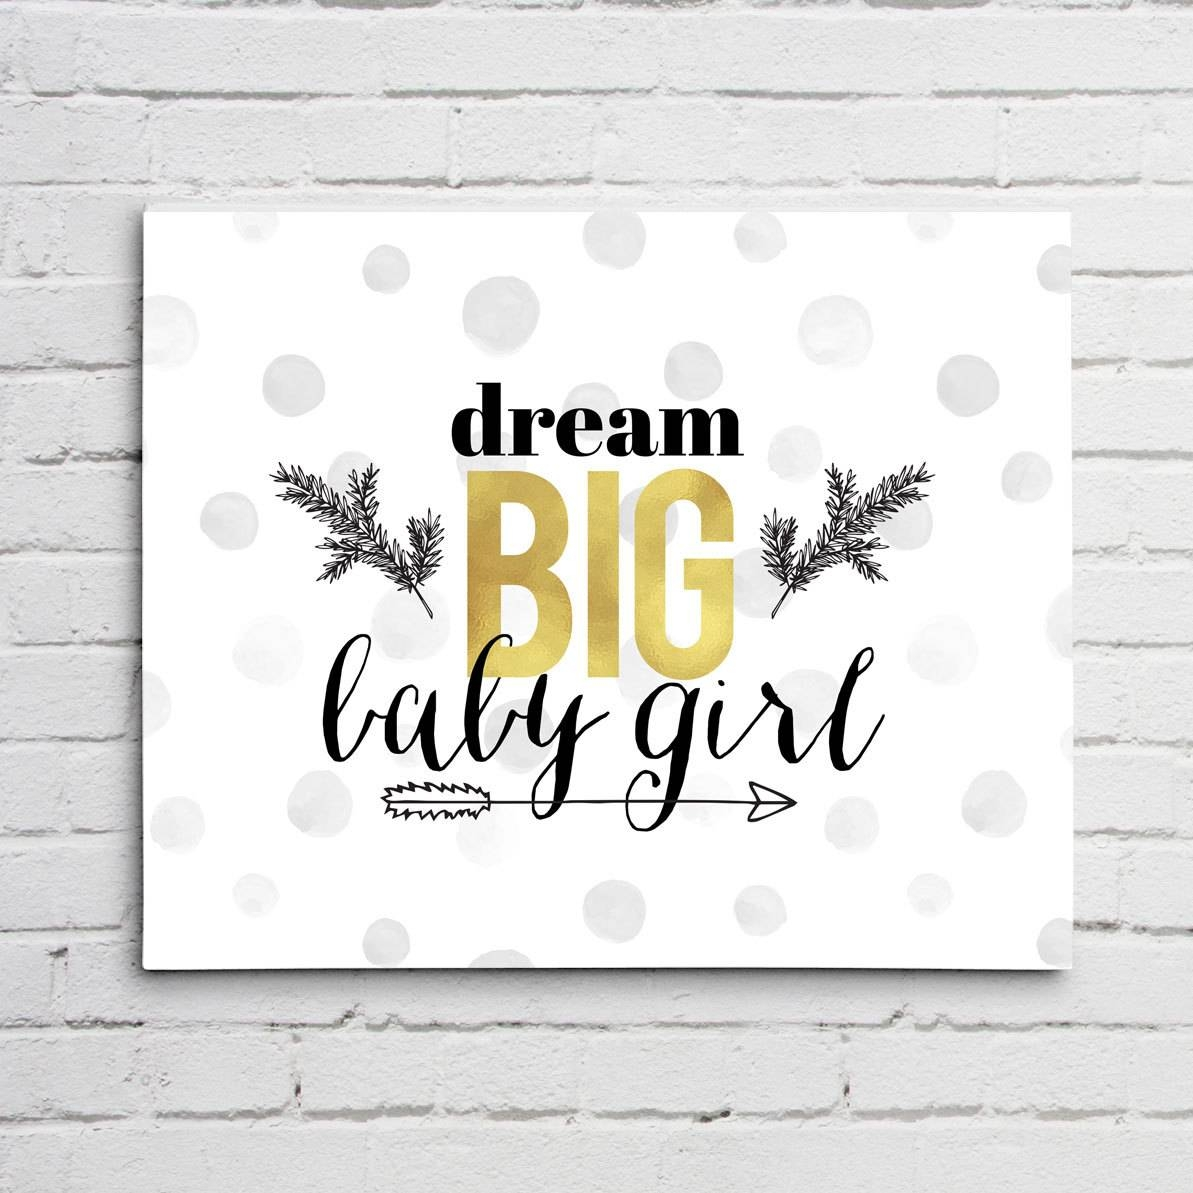 Dream Big Baby Girl Typography Gold Foil Wall Art  Project Cottage Regarding Recent Typography Canvas Wall Art (View 10 of 20)